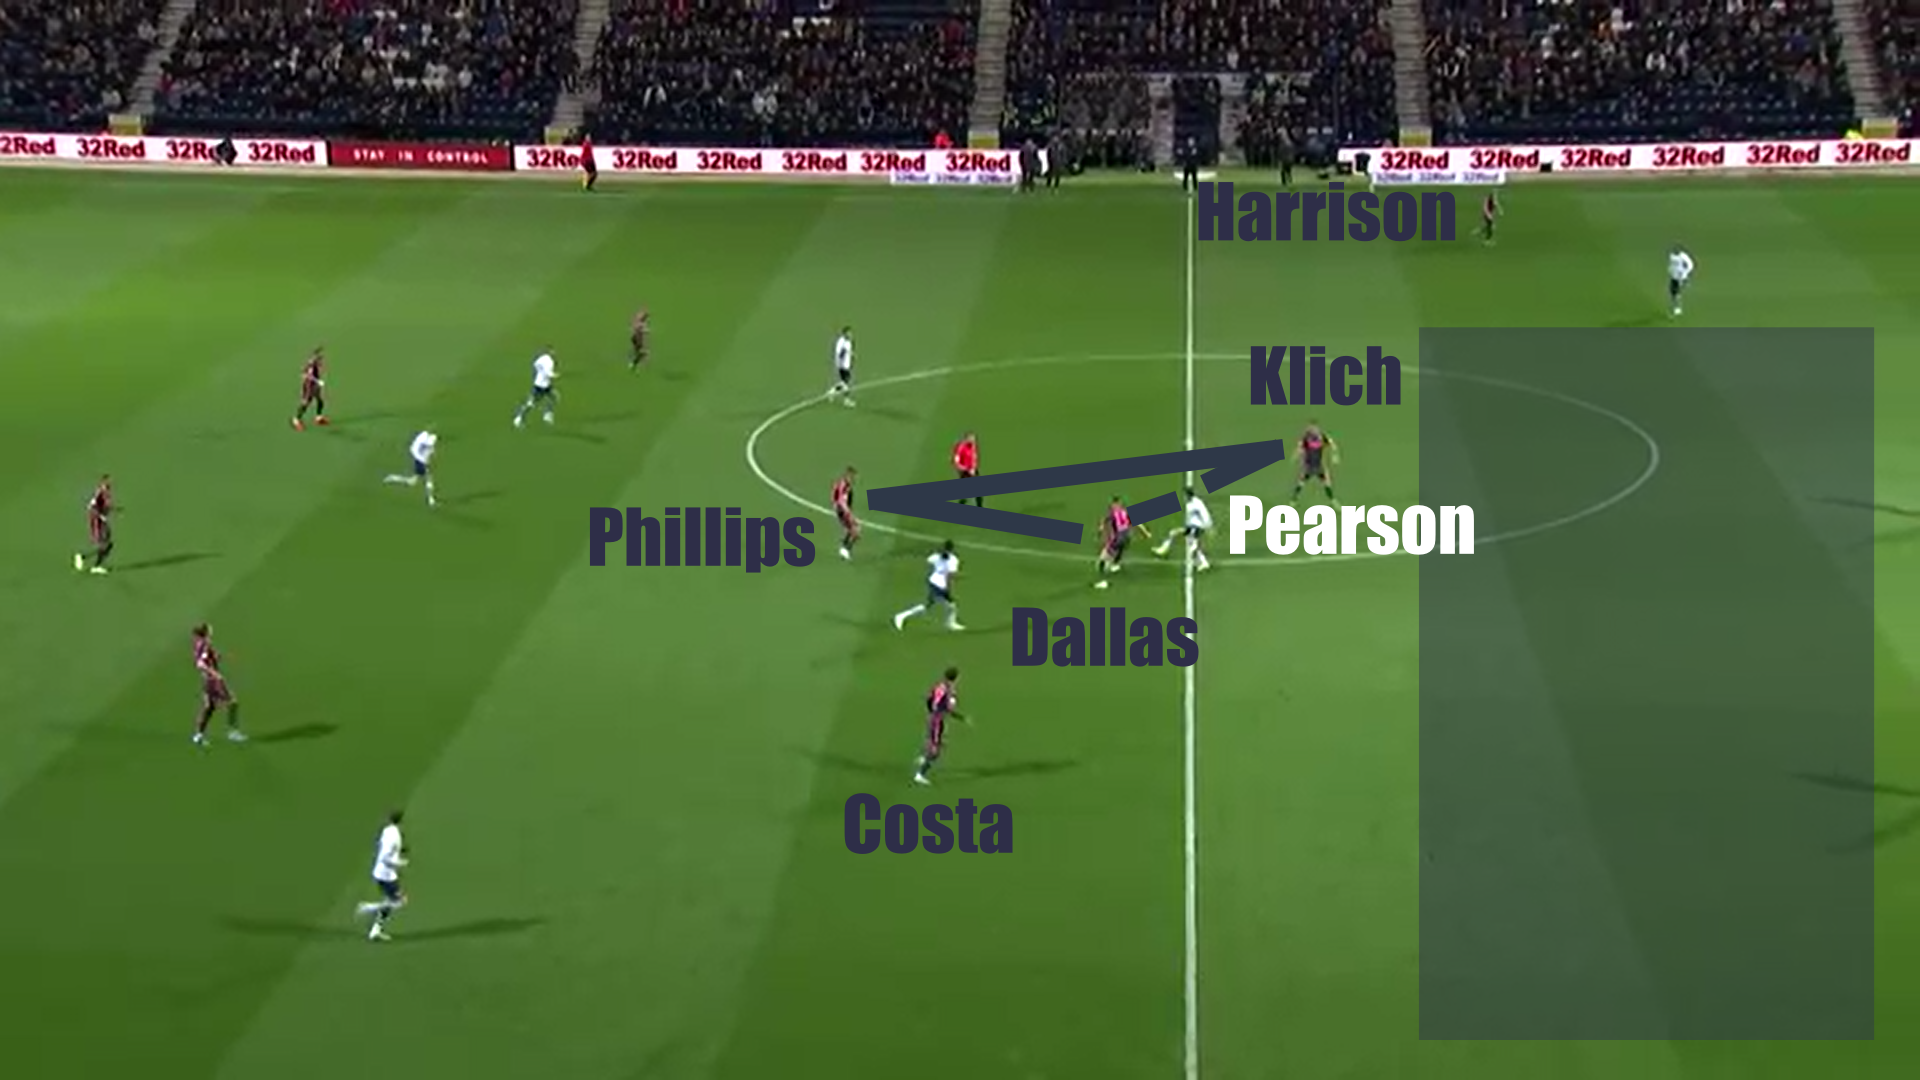 EFL Championship 2019/20: Preston North End vs Leeds United - tactical analysis tactics